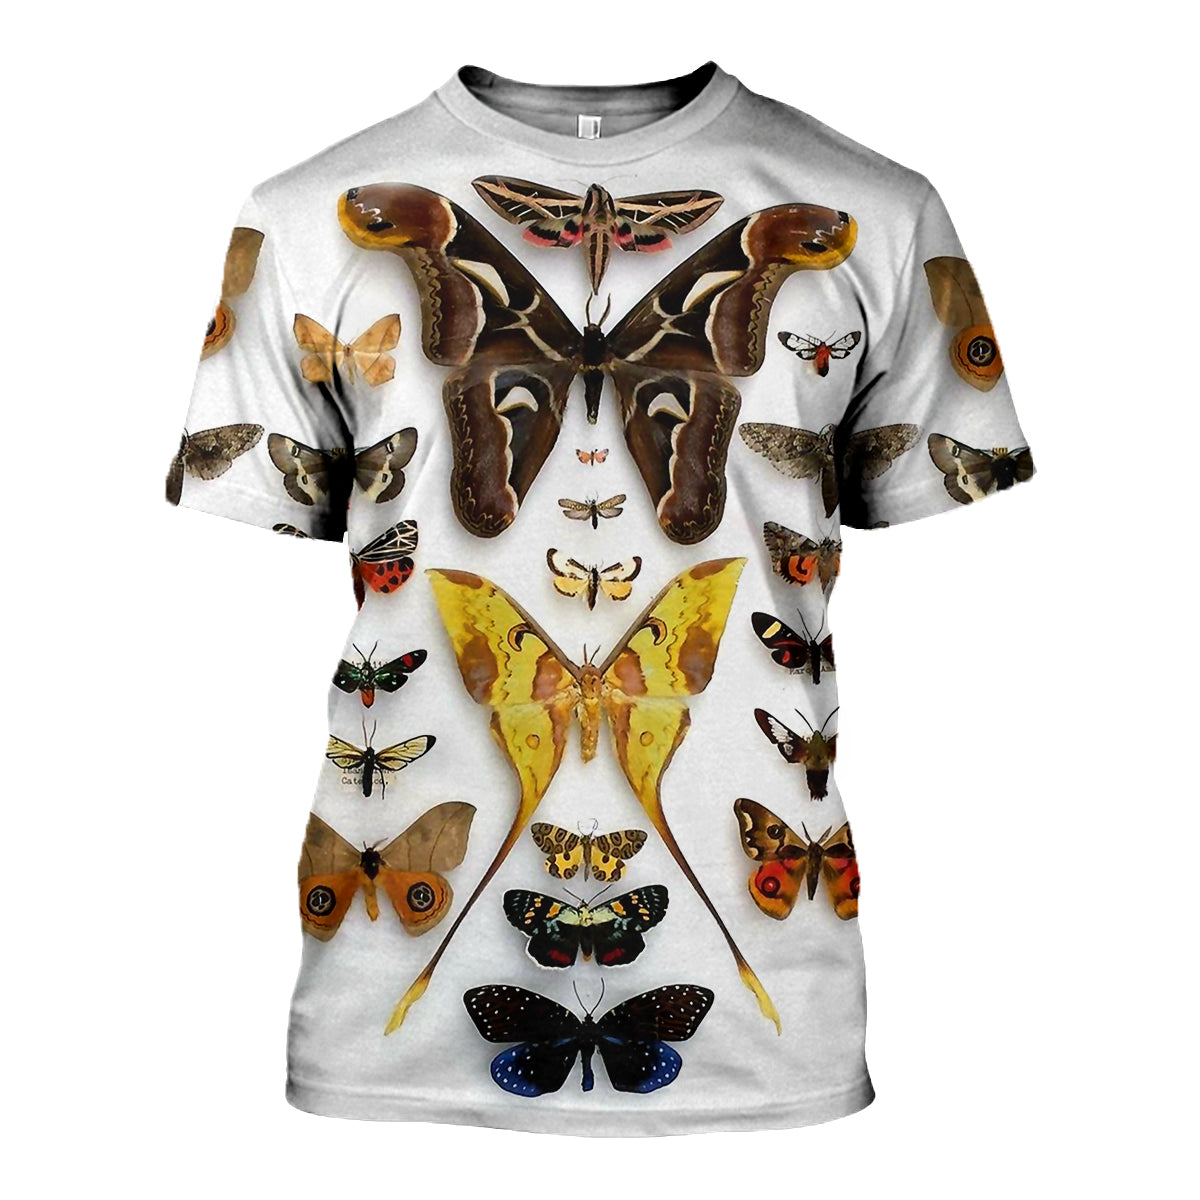 3D All Over Printed Butterflies Shirts And Shorts